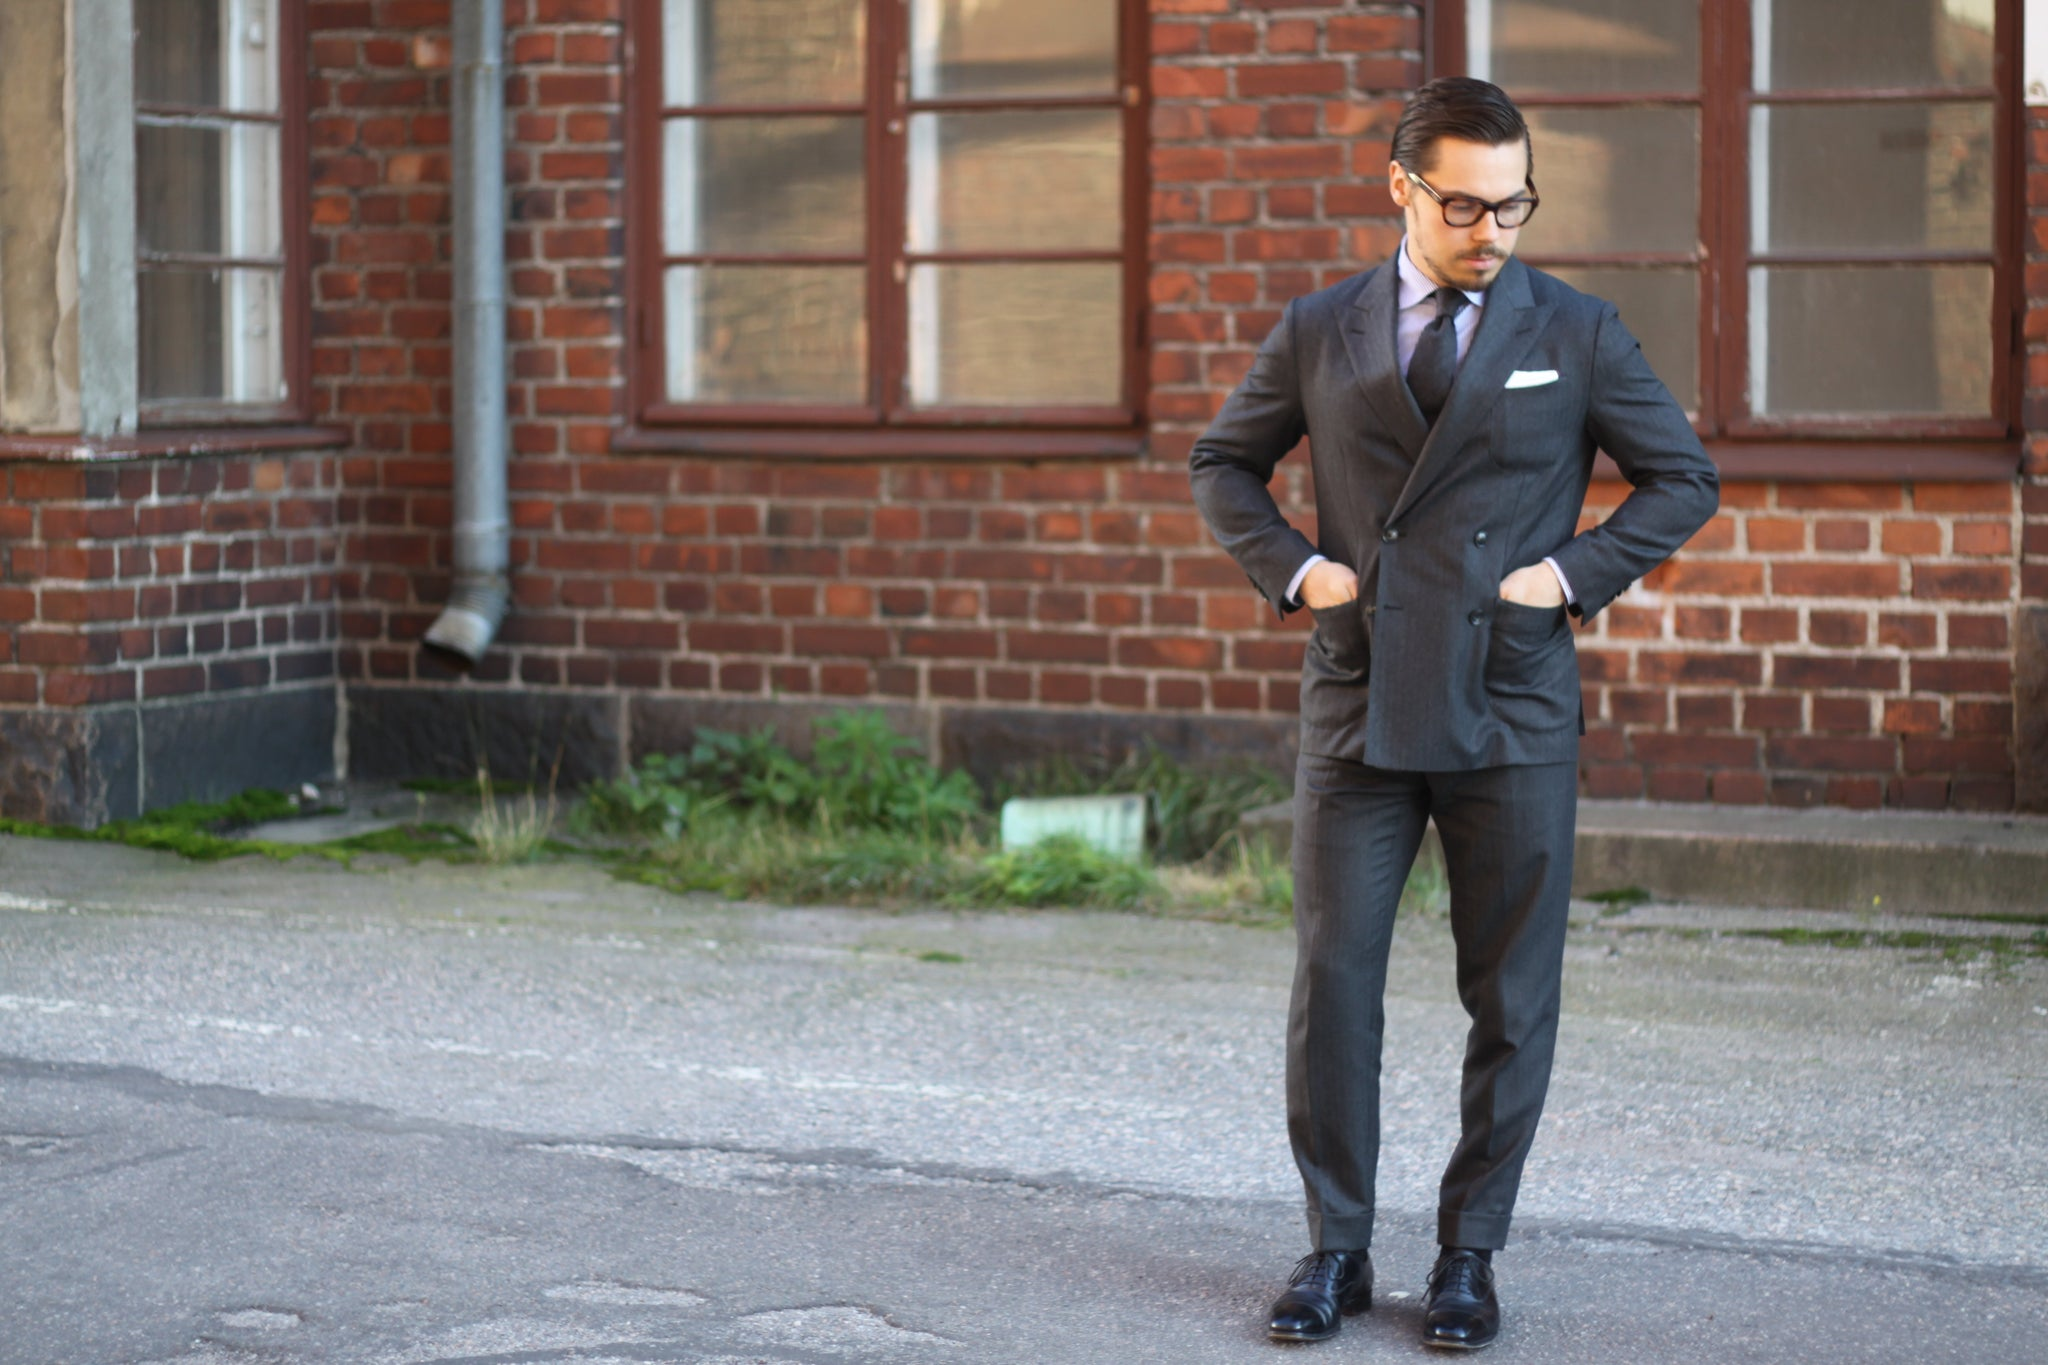 Gray double-breasted suit - versatile choice for fall part I